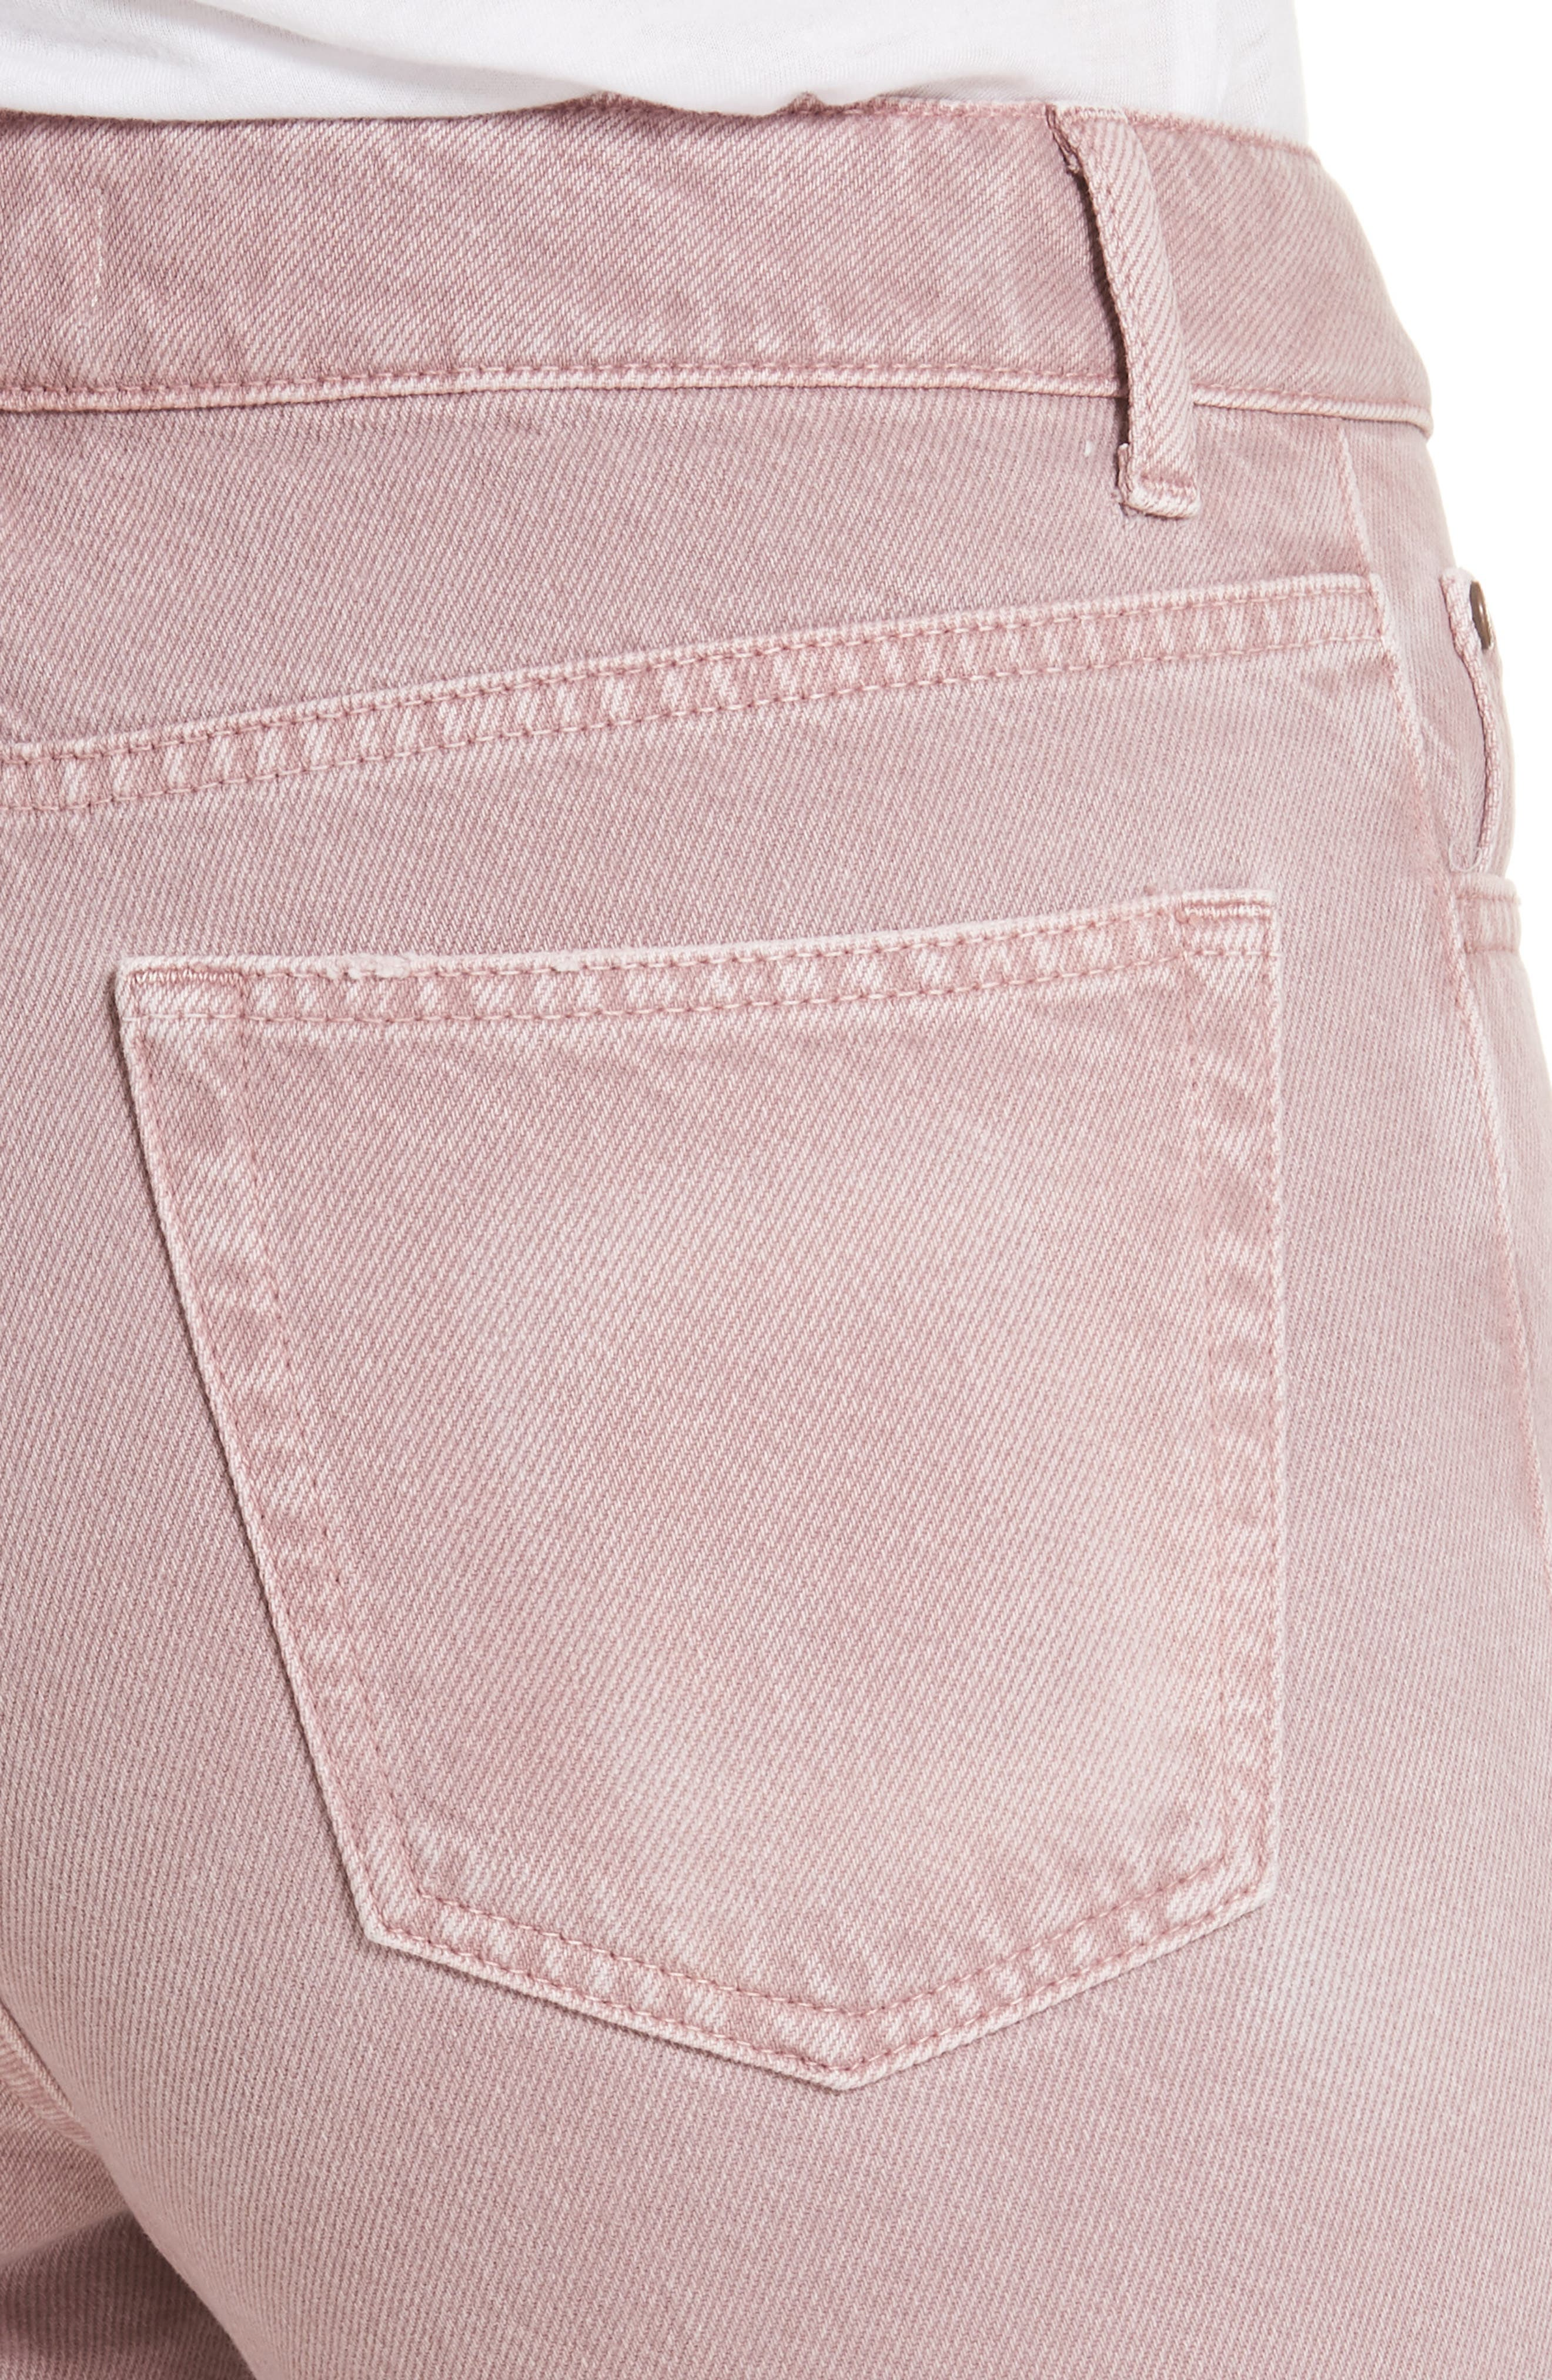 Ripped Raw Edge Jeans,                             Alternate thumbnail 5, color,                             Rose